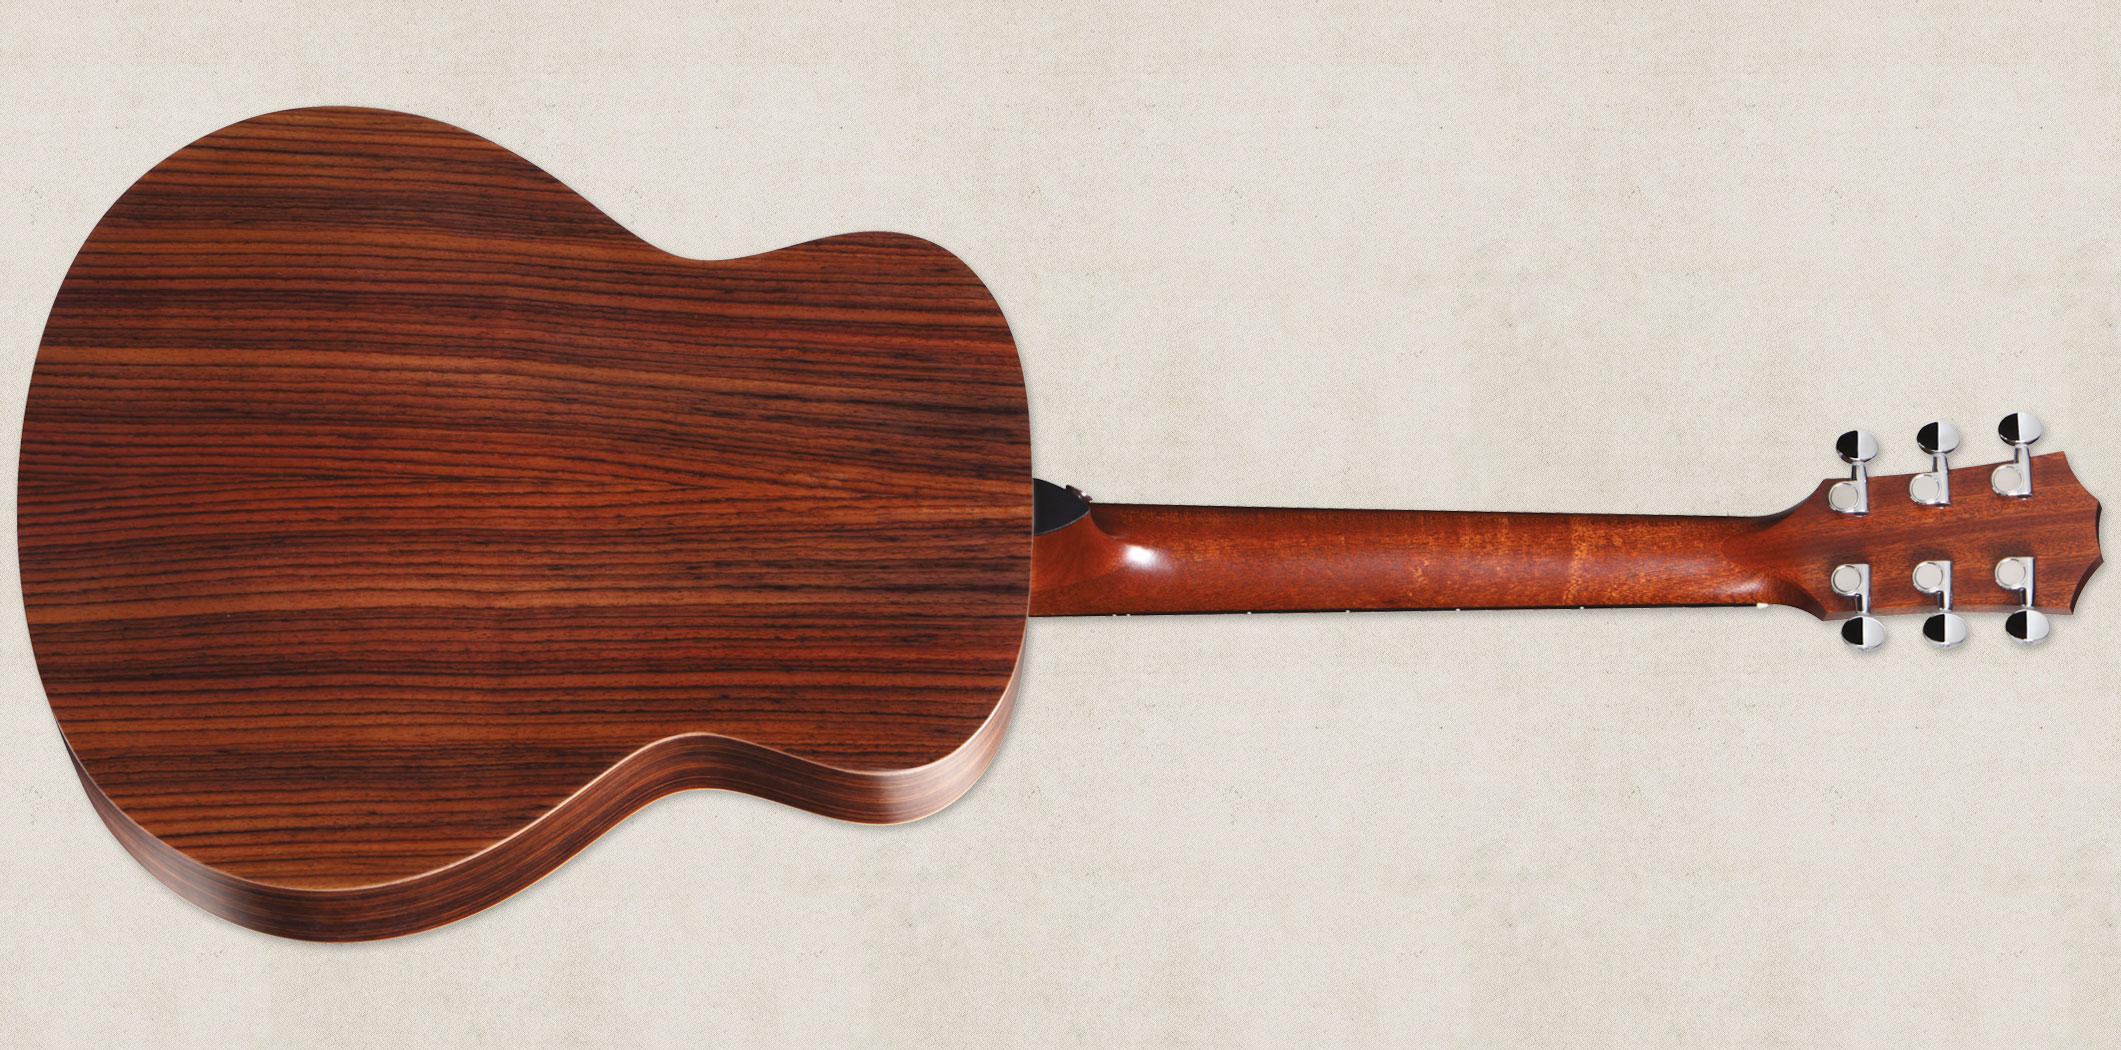 Gs mini rosewood taylor guitars for The rosewood